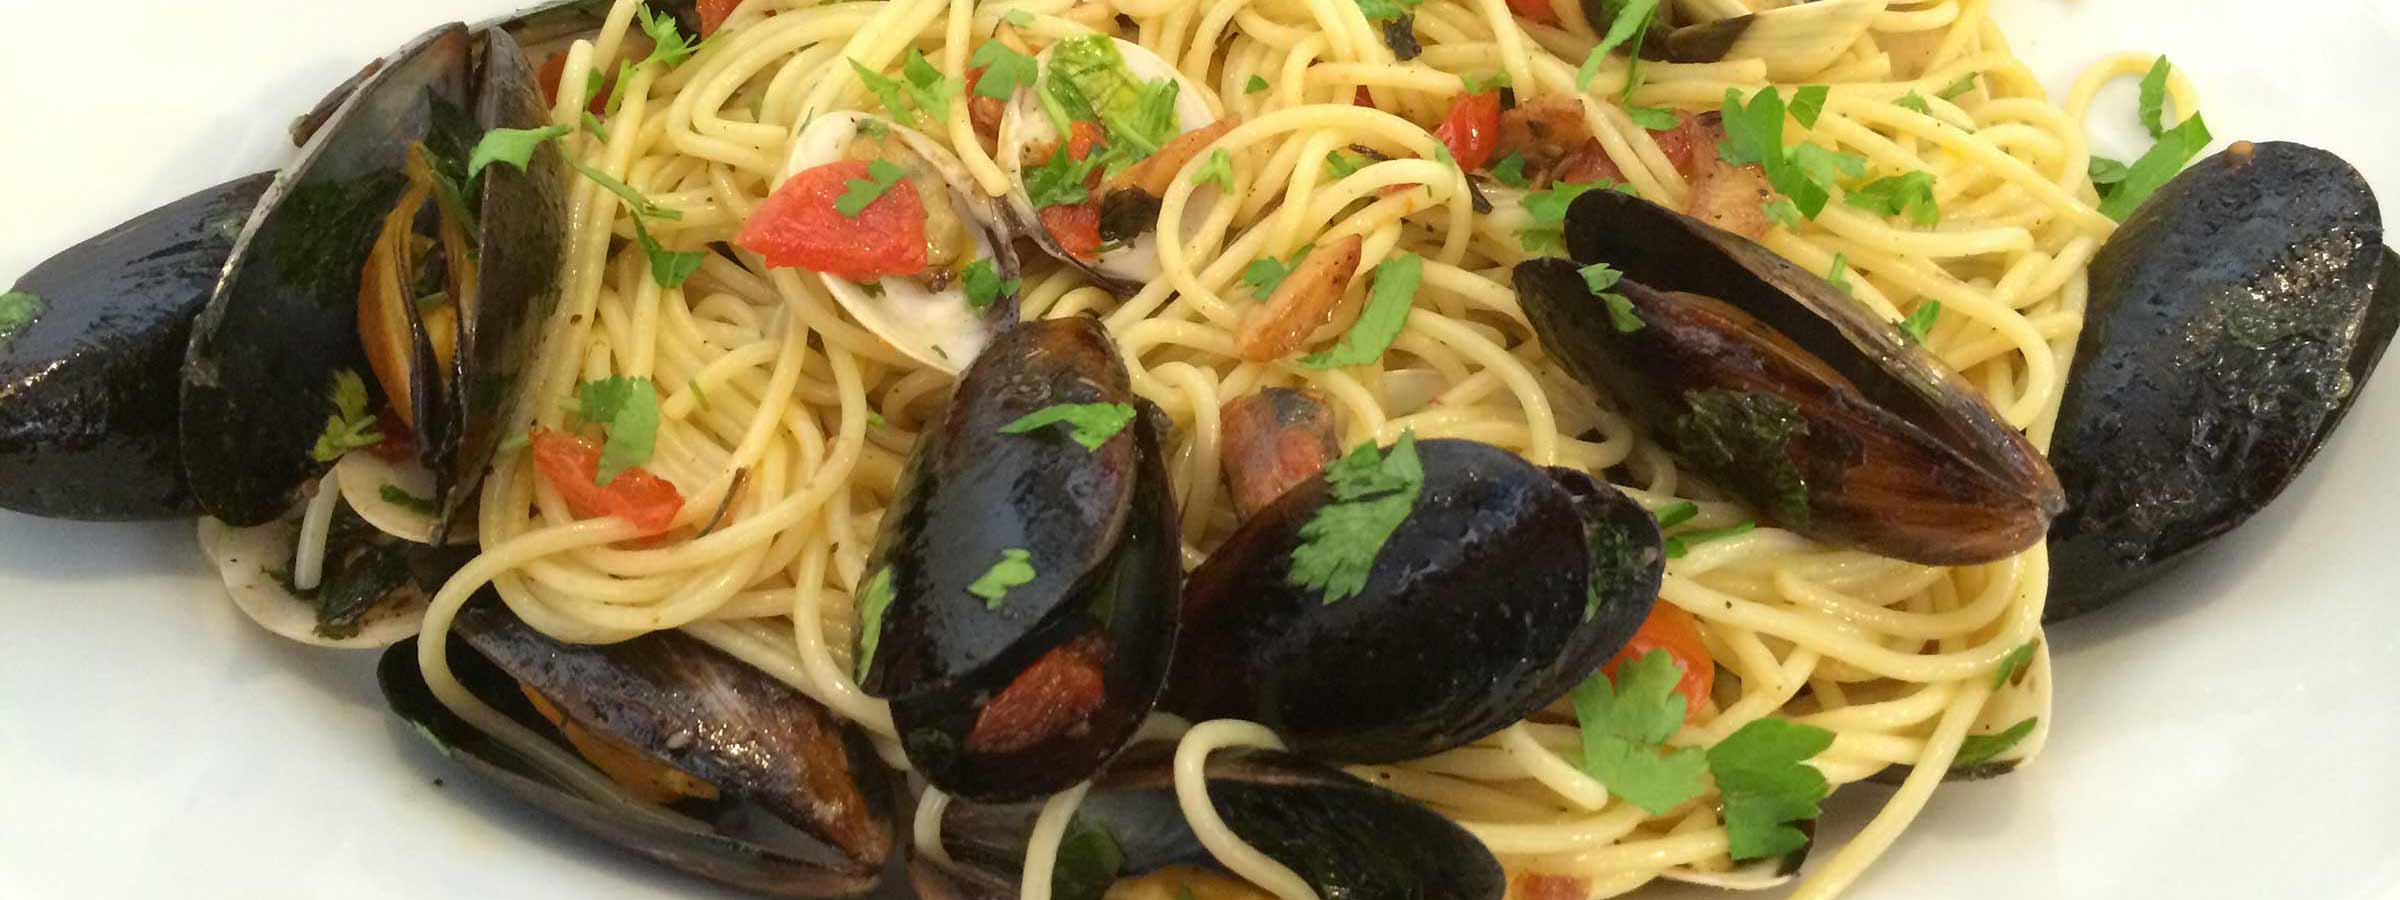 mussels in pasta